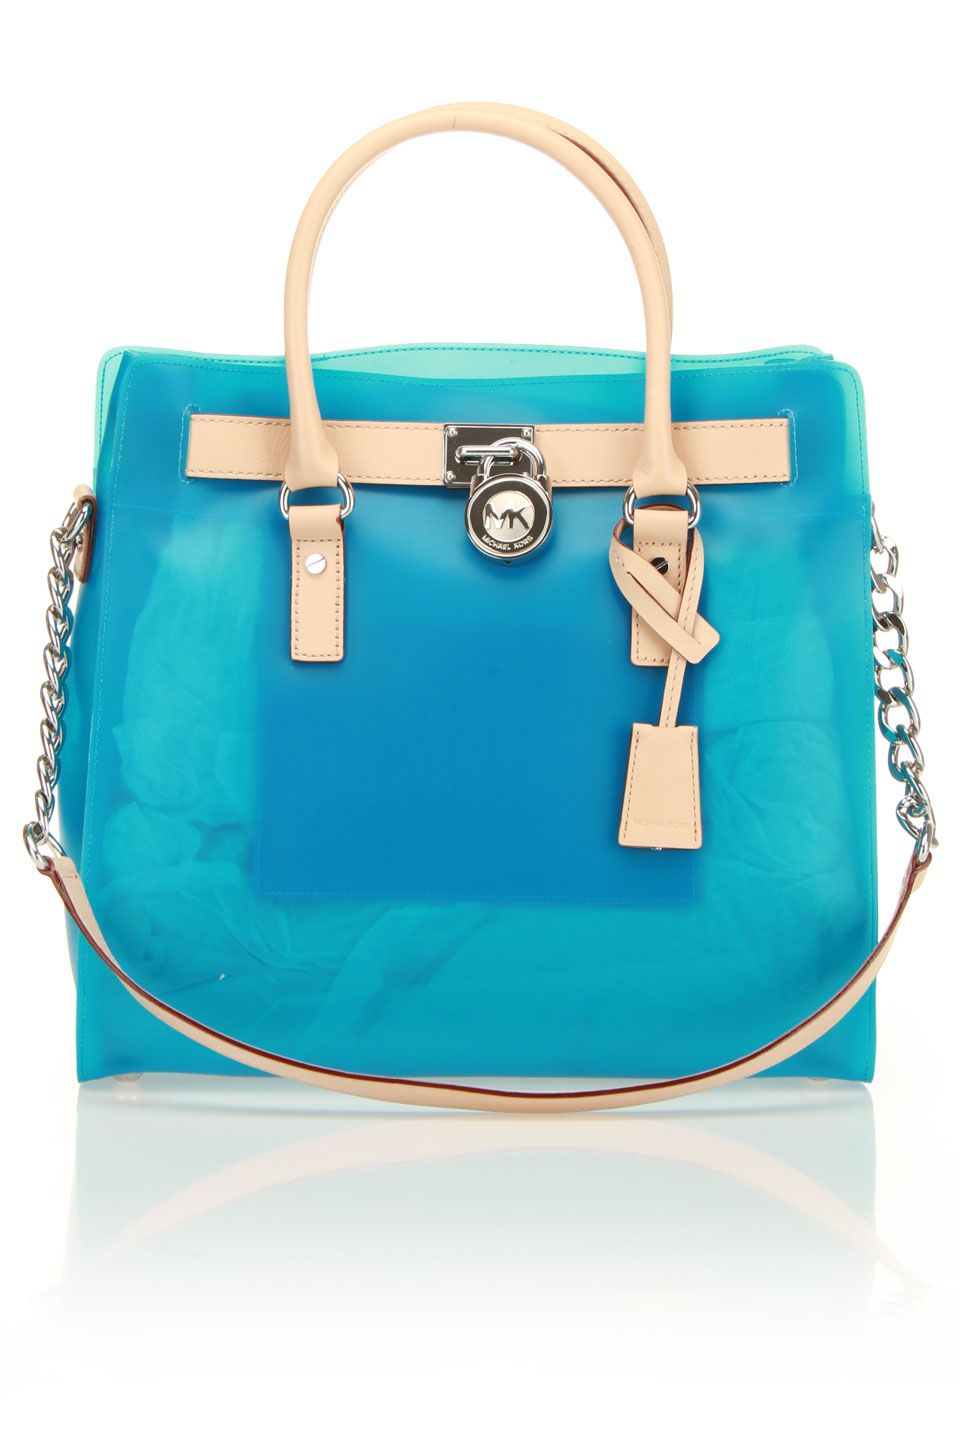 MK Jelly Tote in Turquoise Michael Kors Coupon e372ad8e8139f